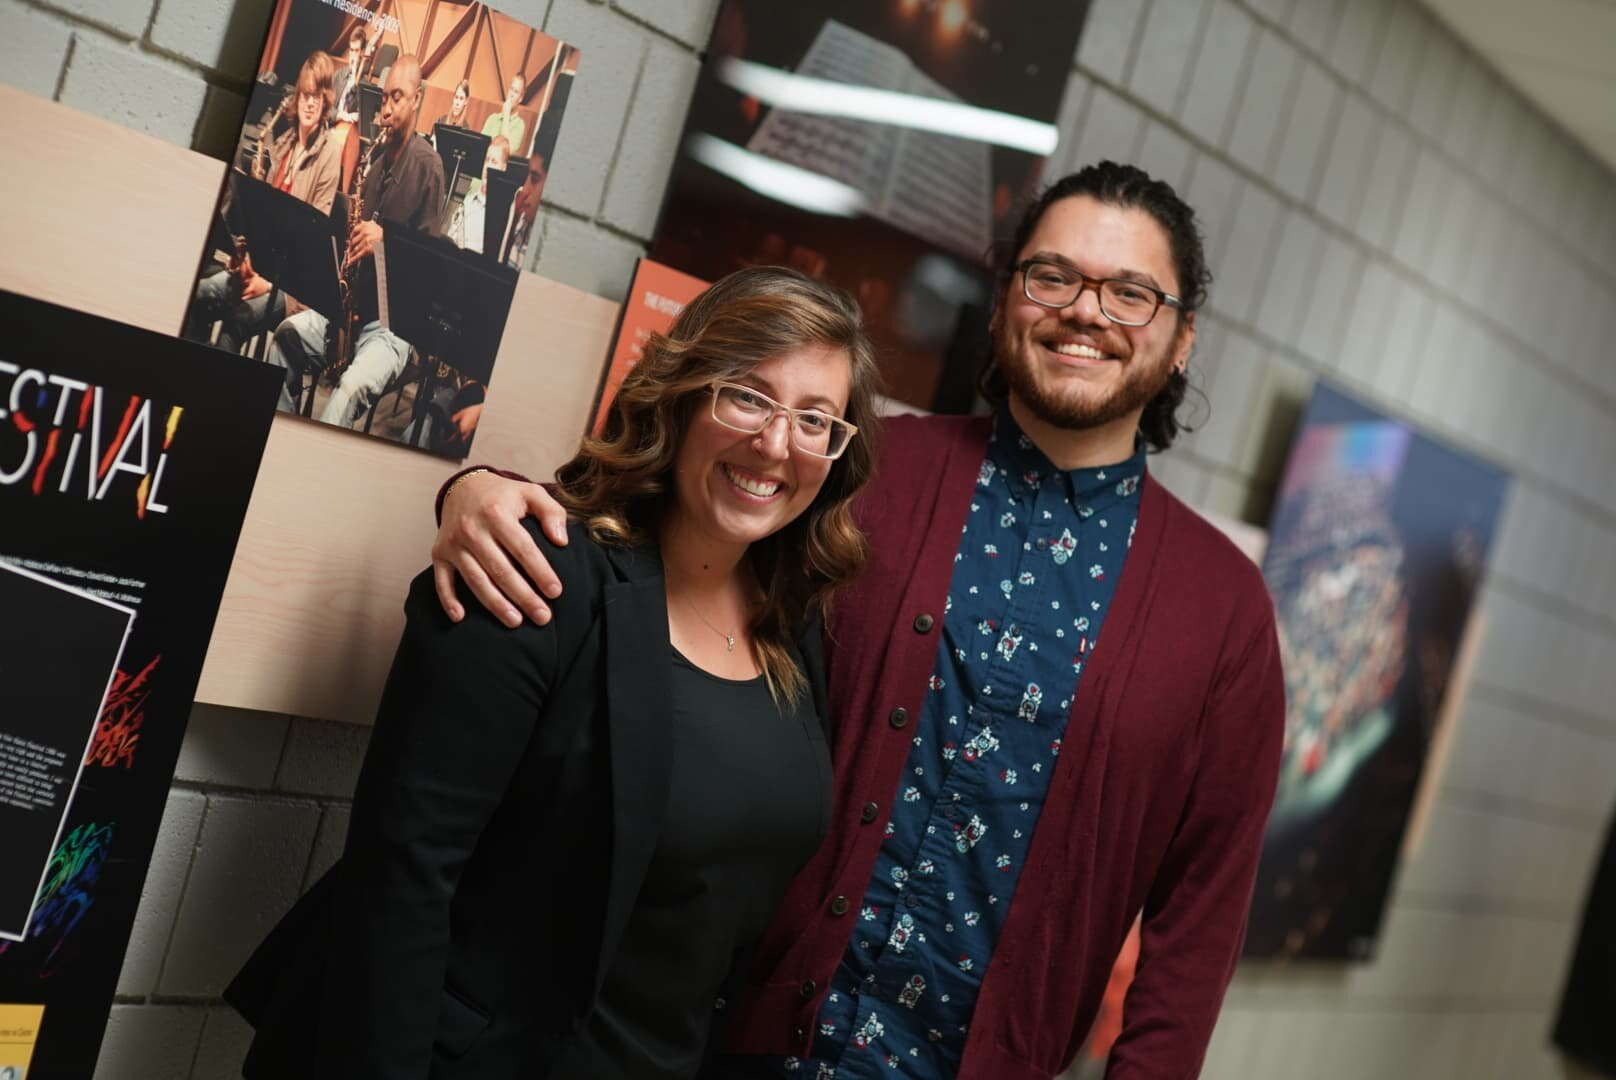 Allison Davis, conductor, and me, following the performance of  EL CHUPACABRA  by the Bowling Green State University Wind Symphony at BGSU's 40th New Music Festival (October 17, 2019). Photograph by Stephen Hennessey.